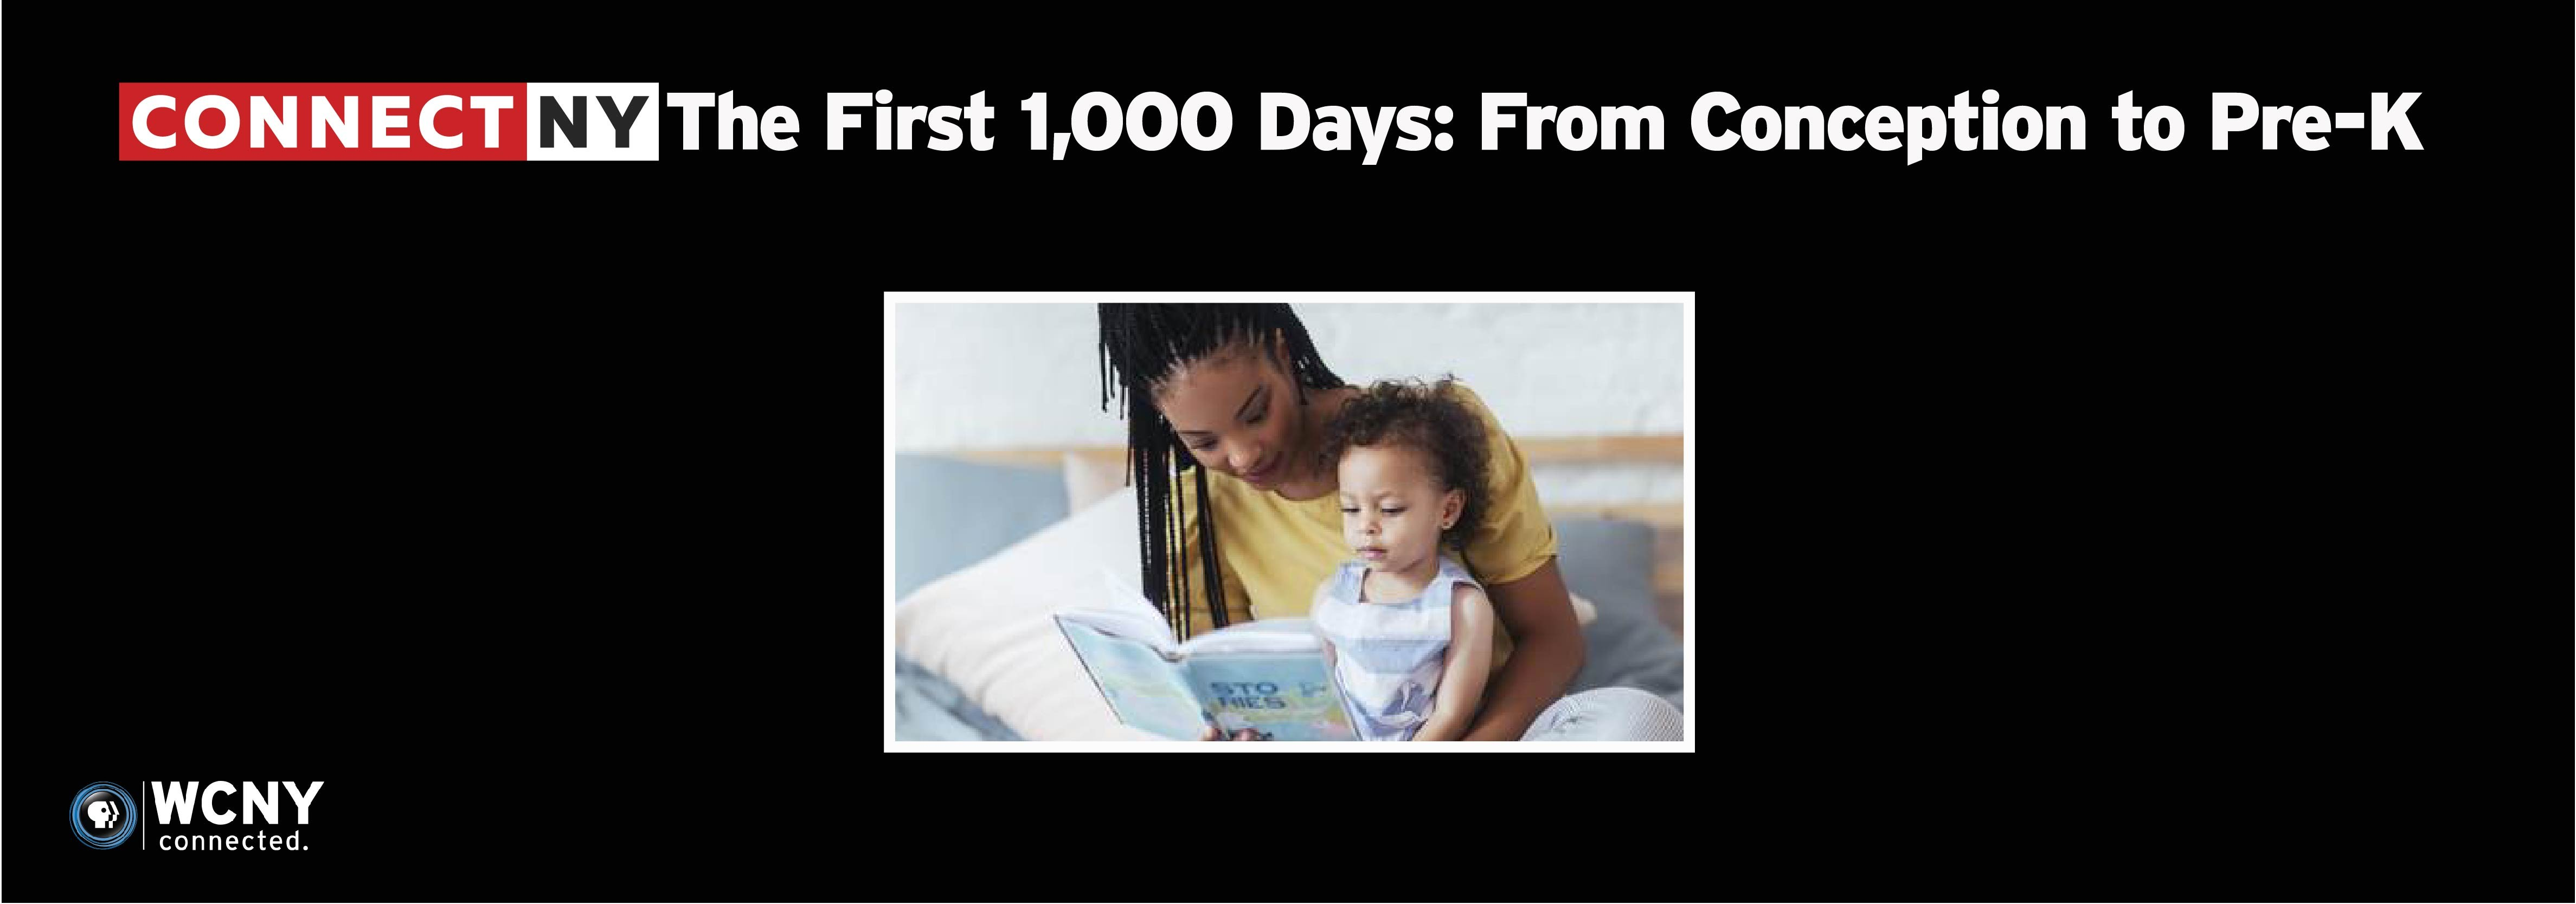 CONNECT NY––The First 1,000 Days: From Conception to Pre-K Watch June 24 at 9 p.m. on WCNY-TV.